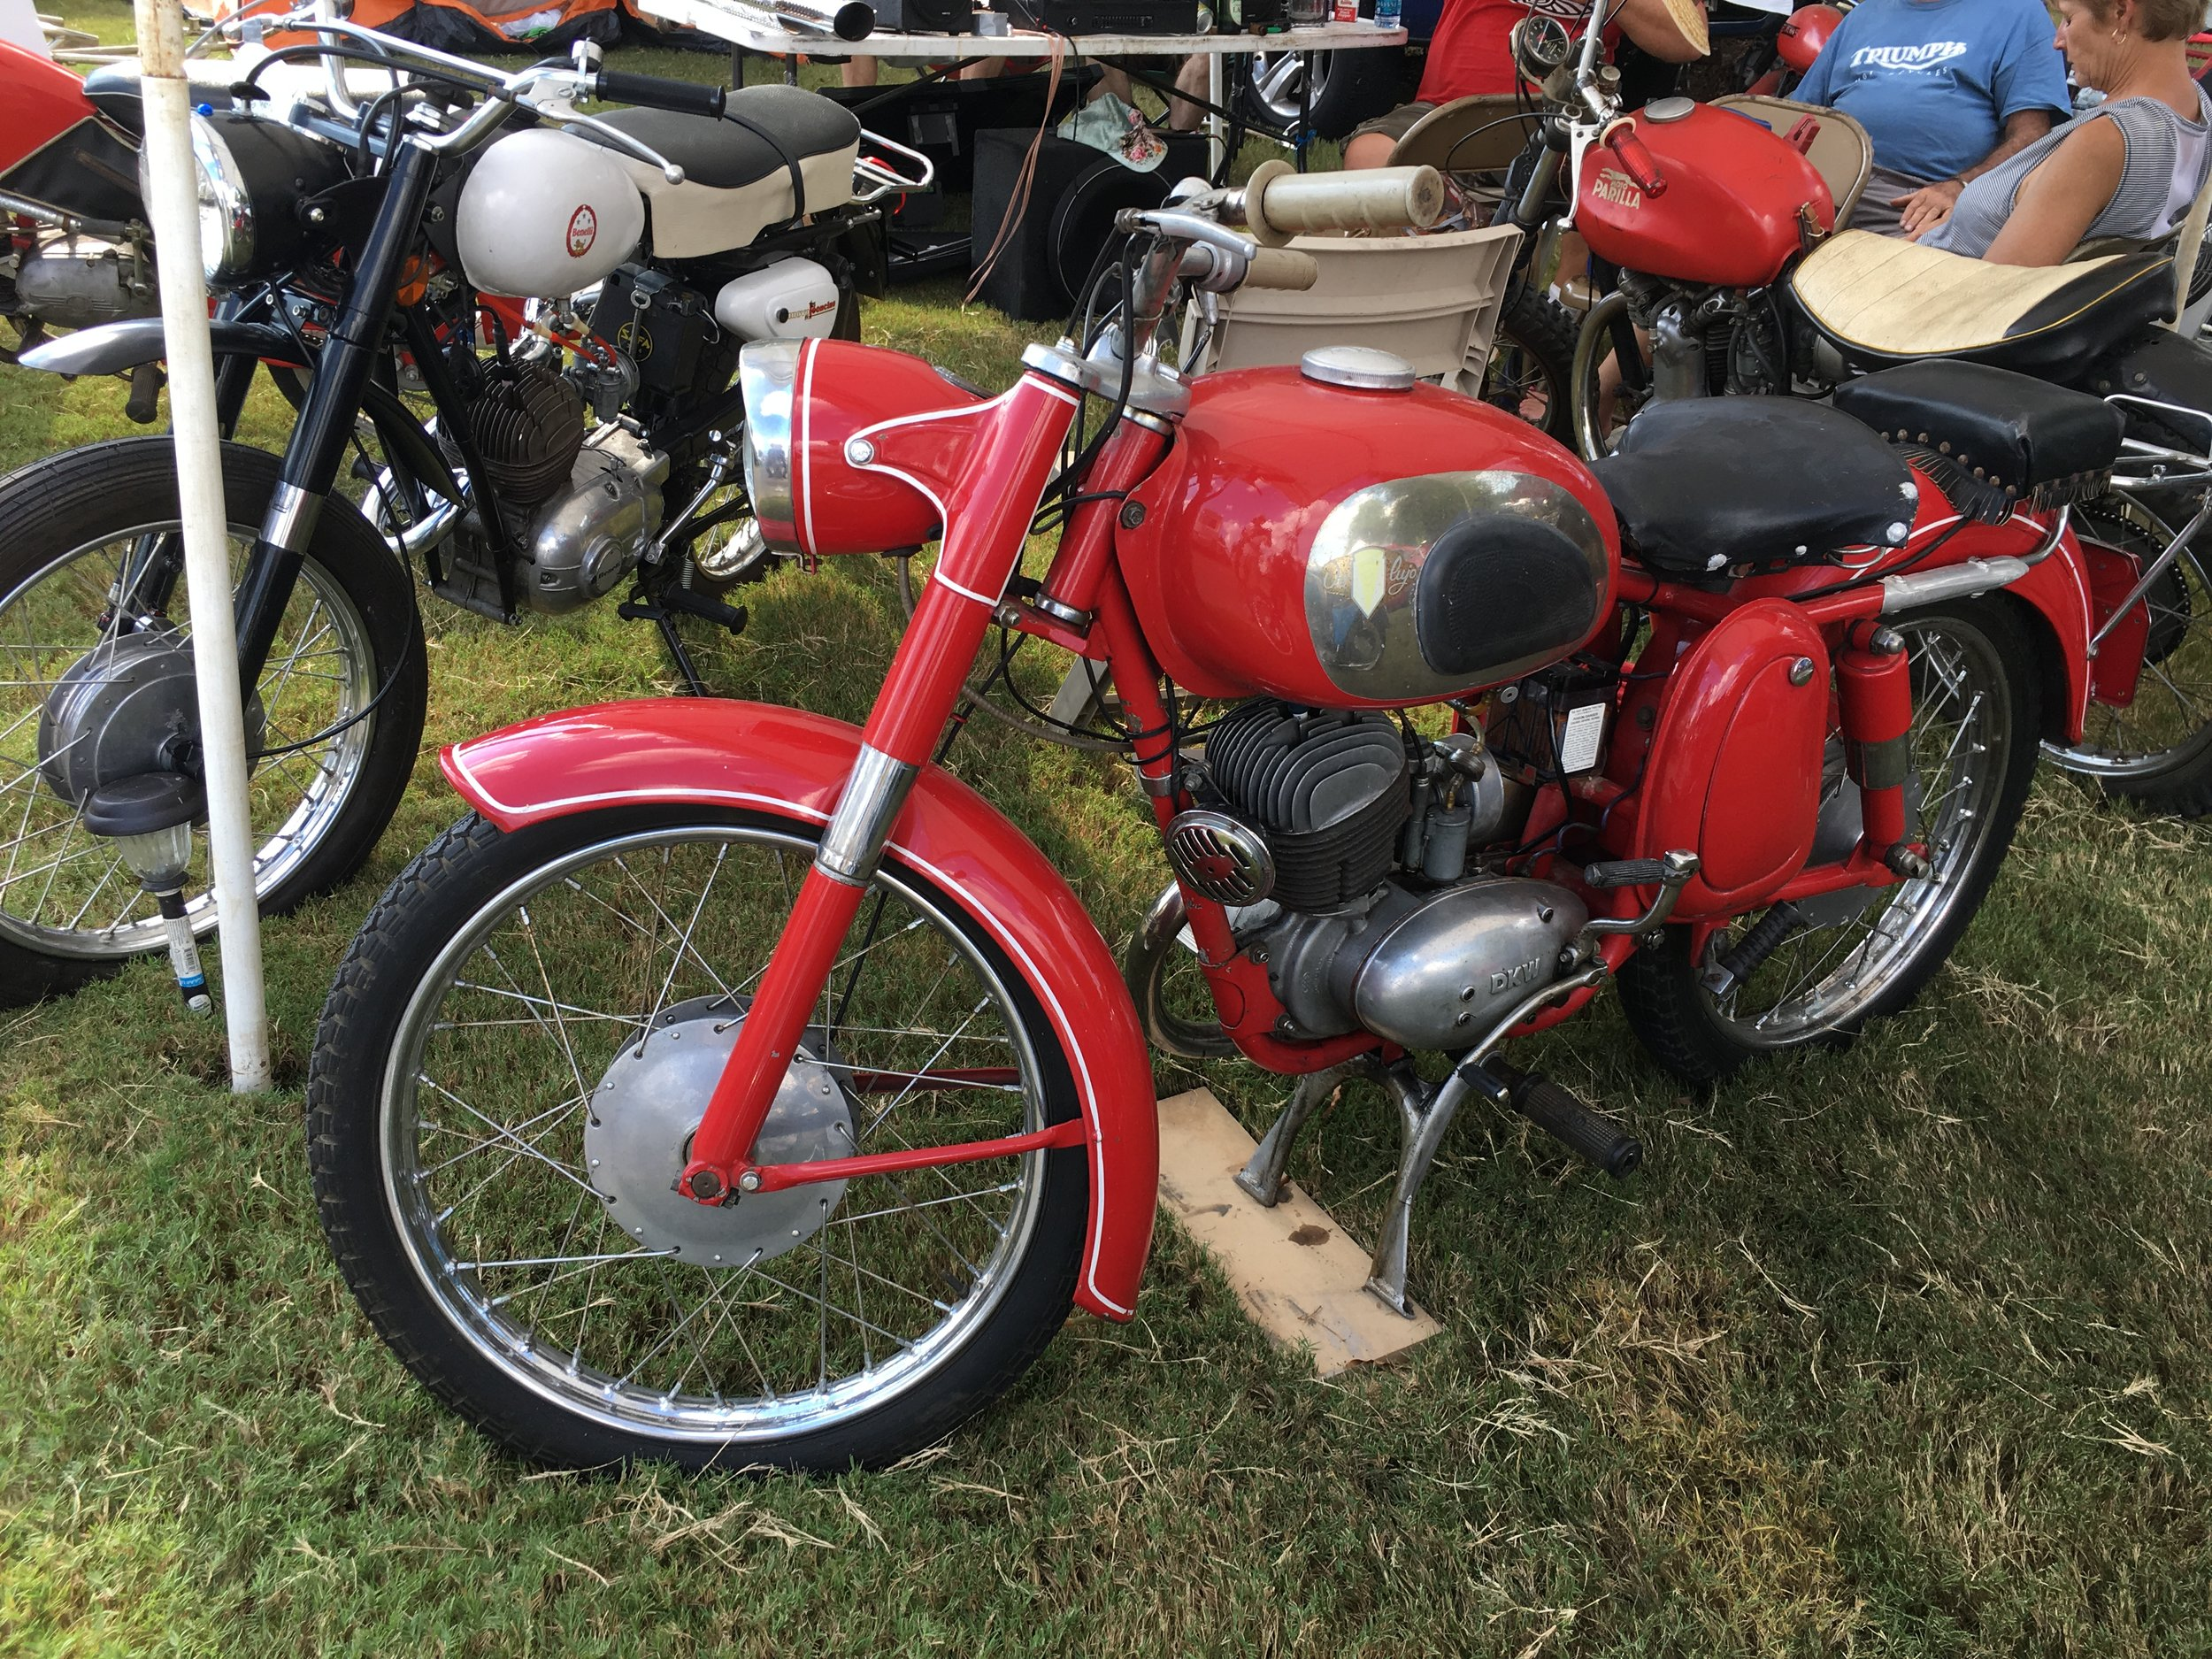 DKW with a pillion seat way off the rear….